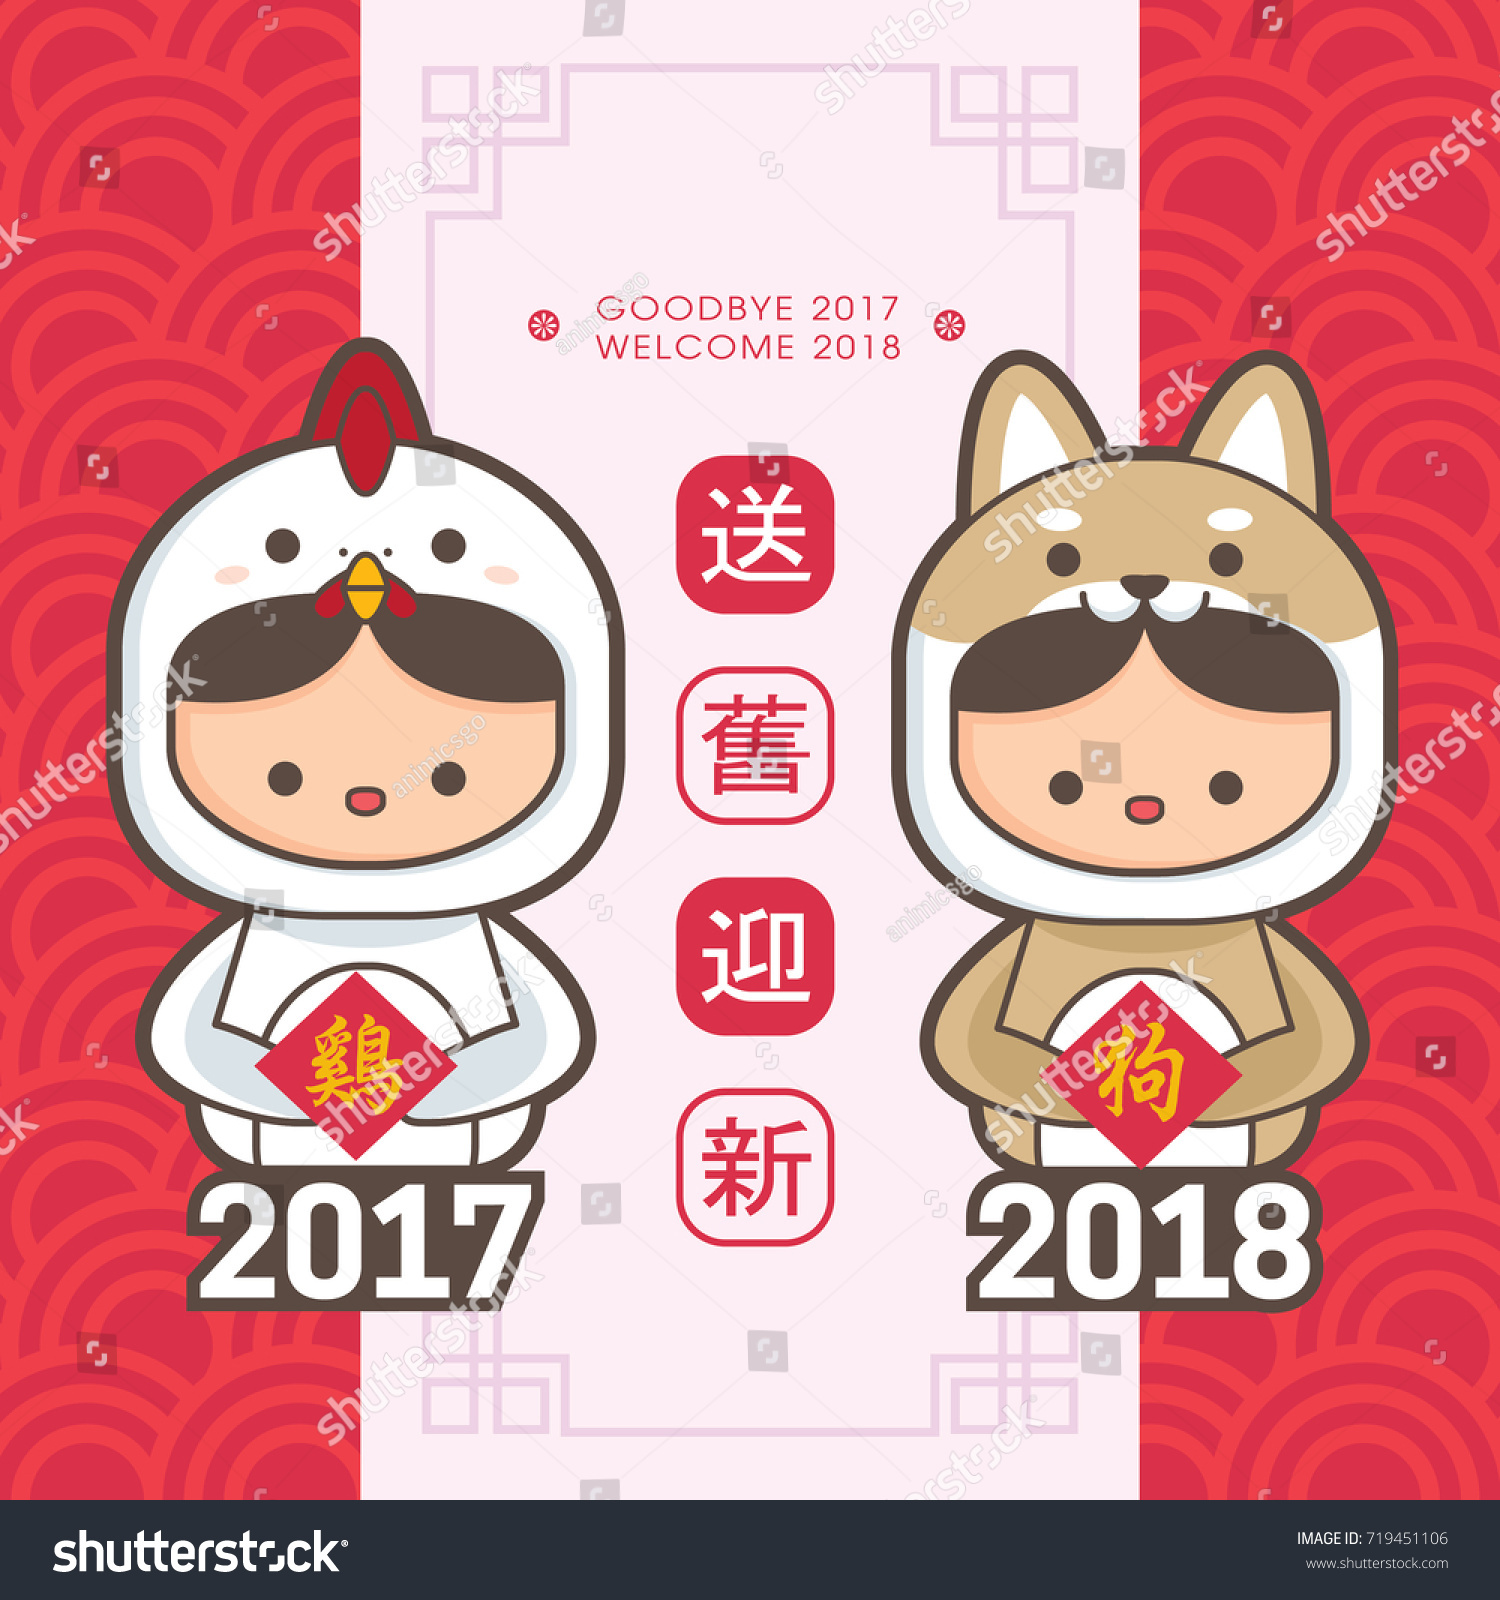 Chinese new year 2018 card template merry christmas and happy chinese new year 2018 card template pronofoot35fo Choice Image